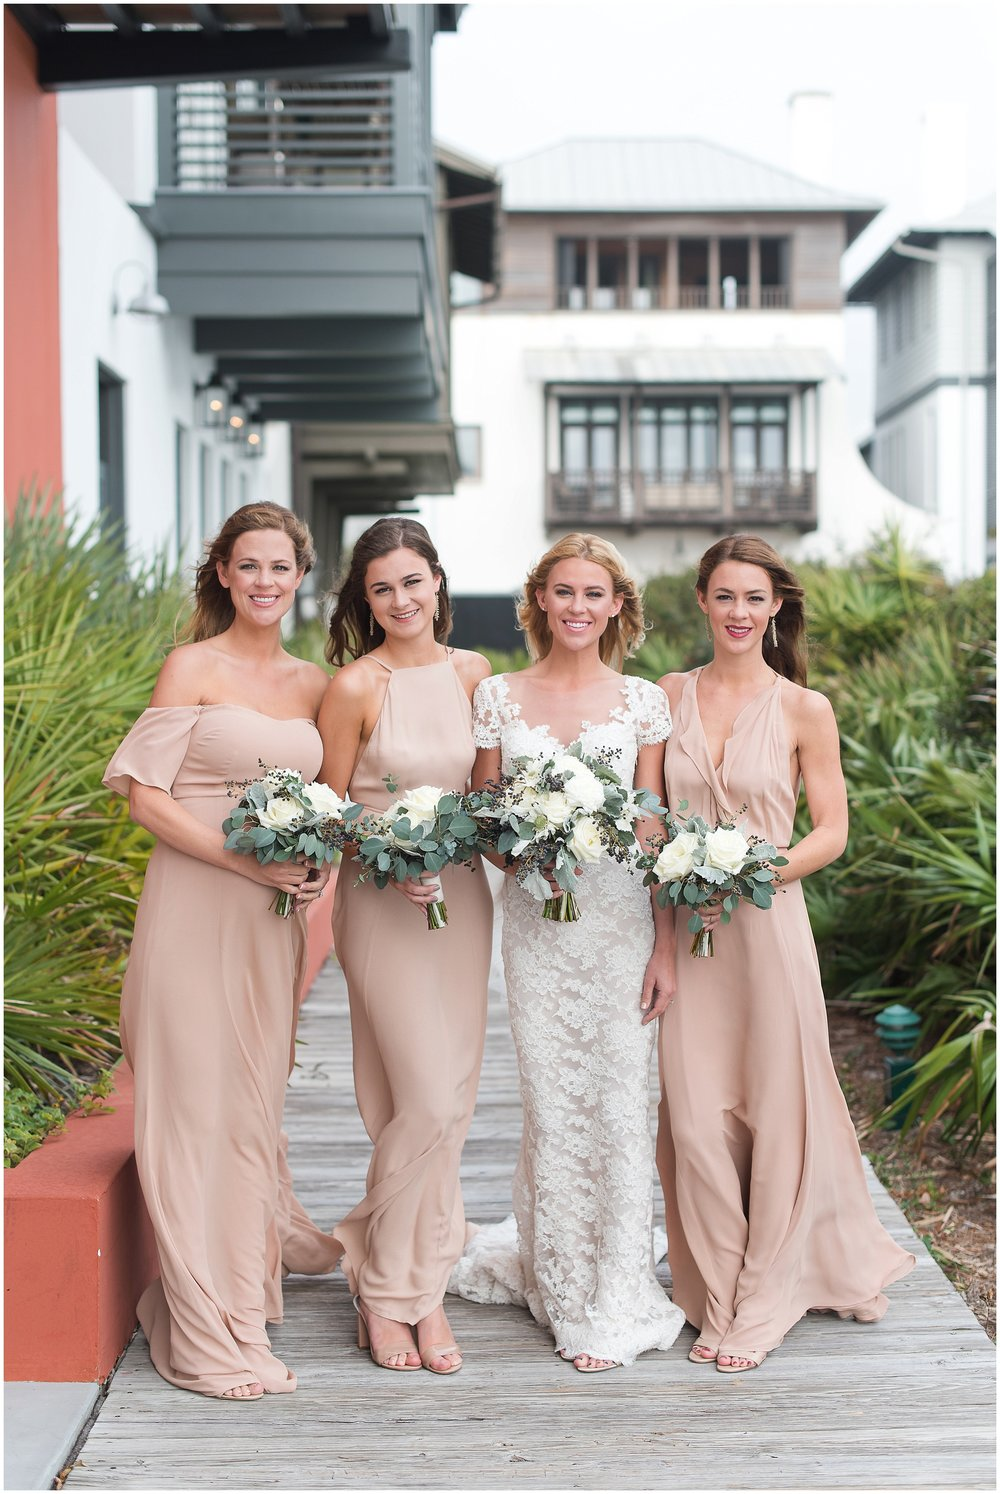 Bride with her bridesmaids in Rosemary Beach, Florida.